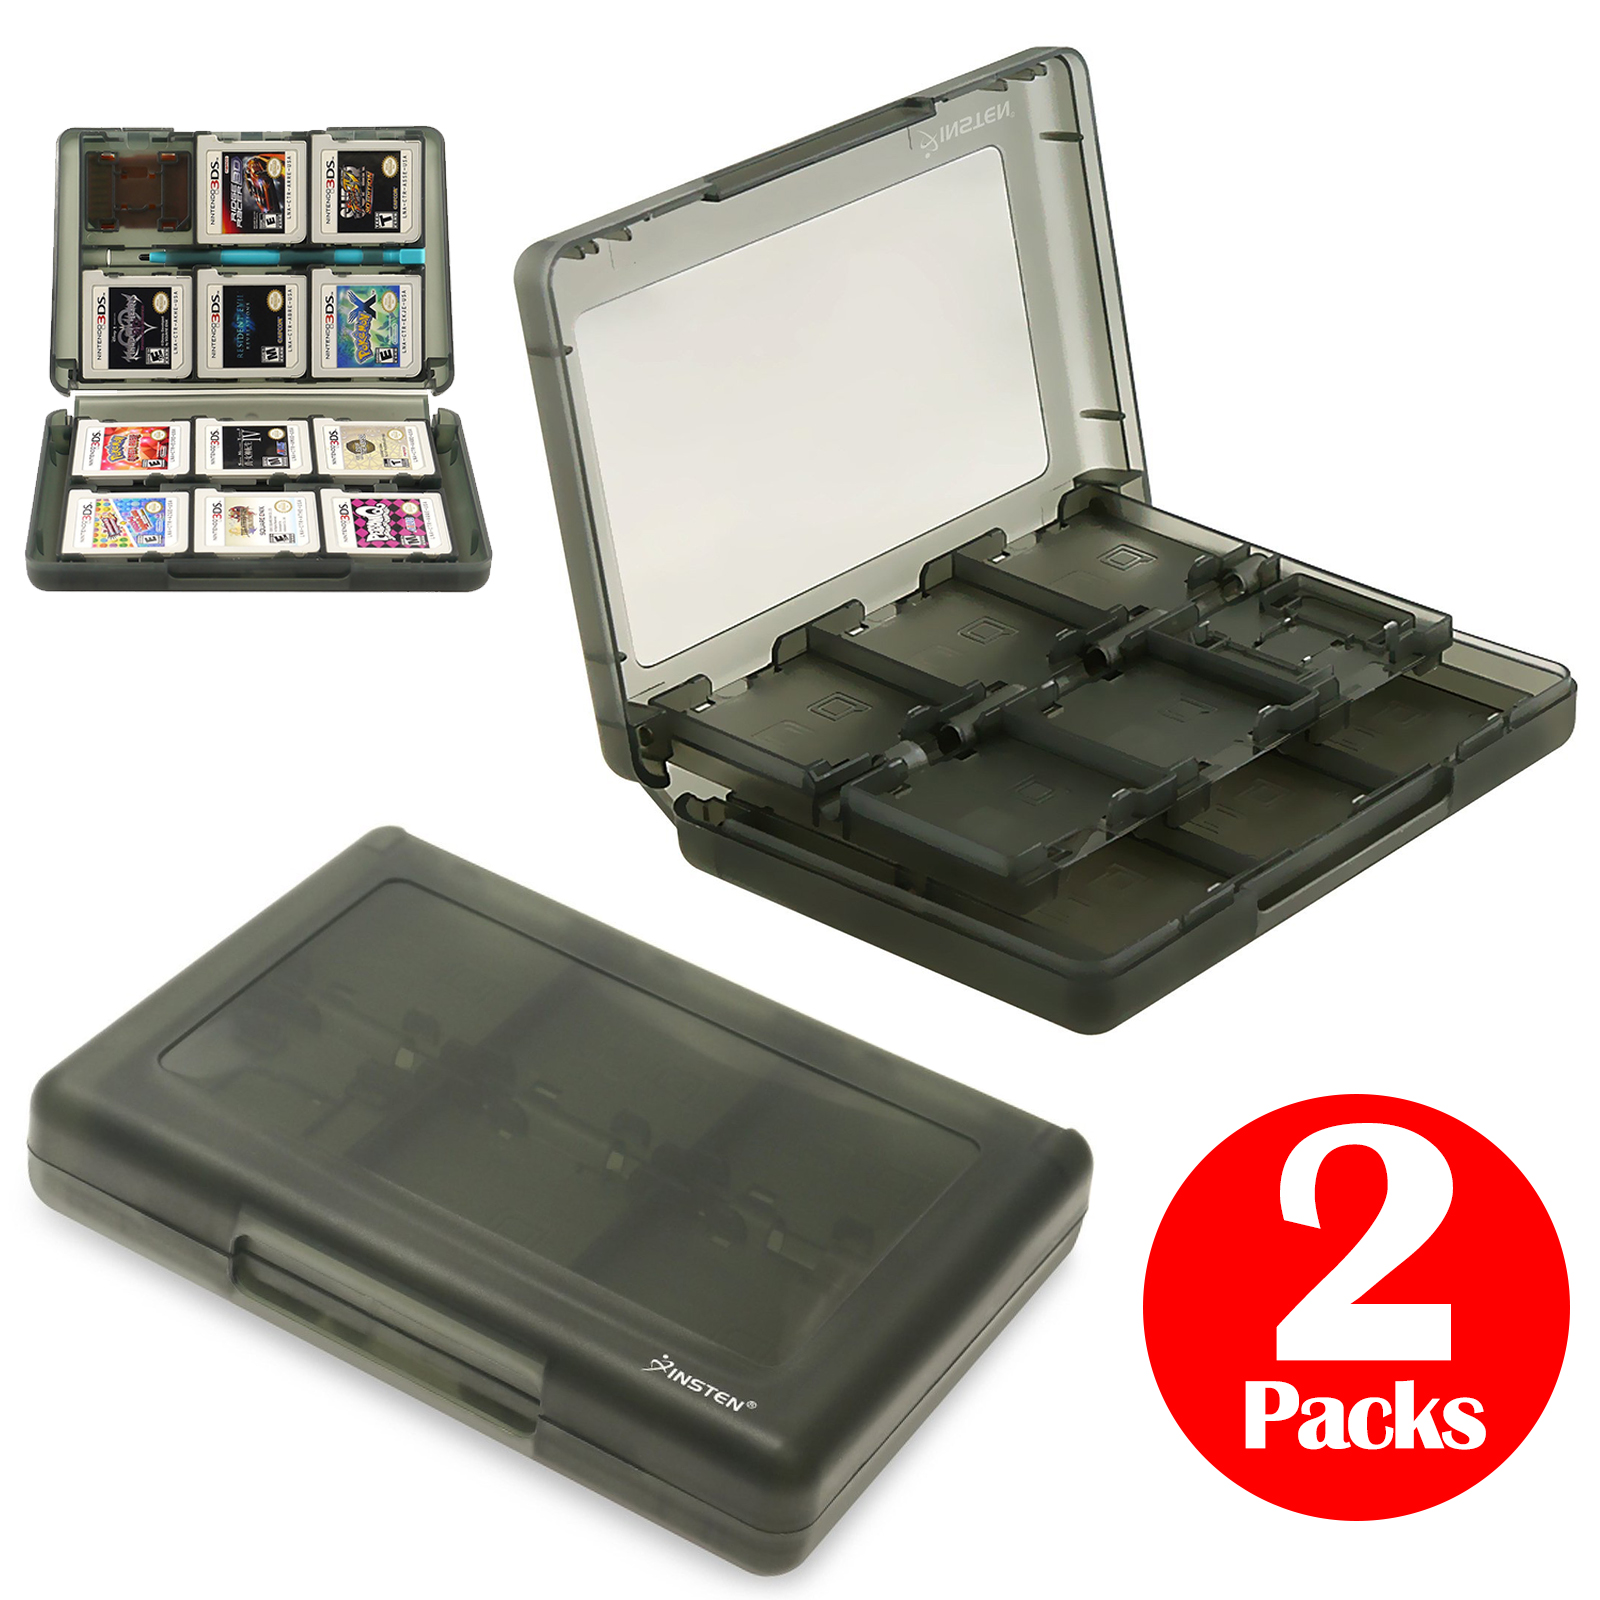 TSV 28-in-1 Game Card Case Compatible With Nintendo 3DS - 2Packs